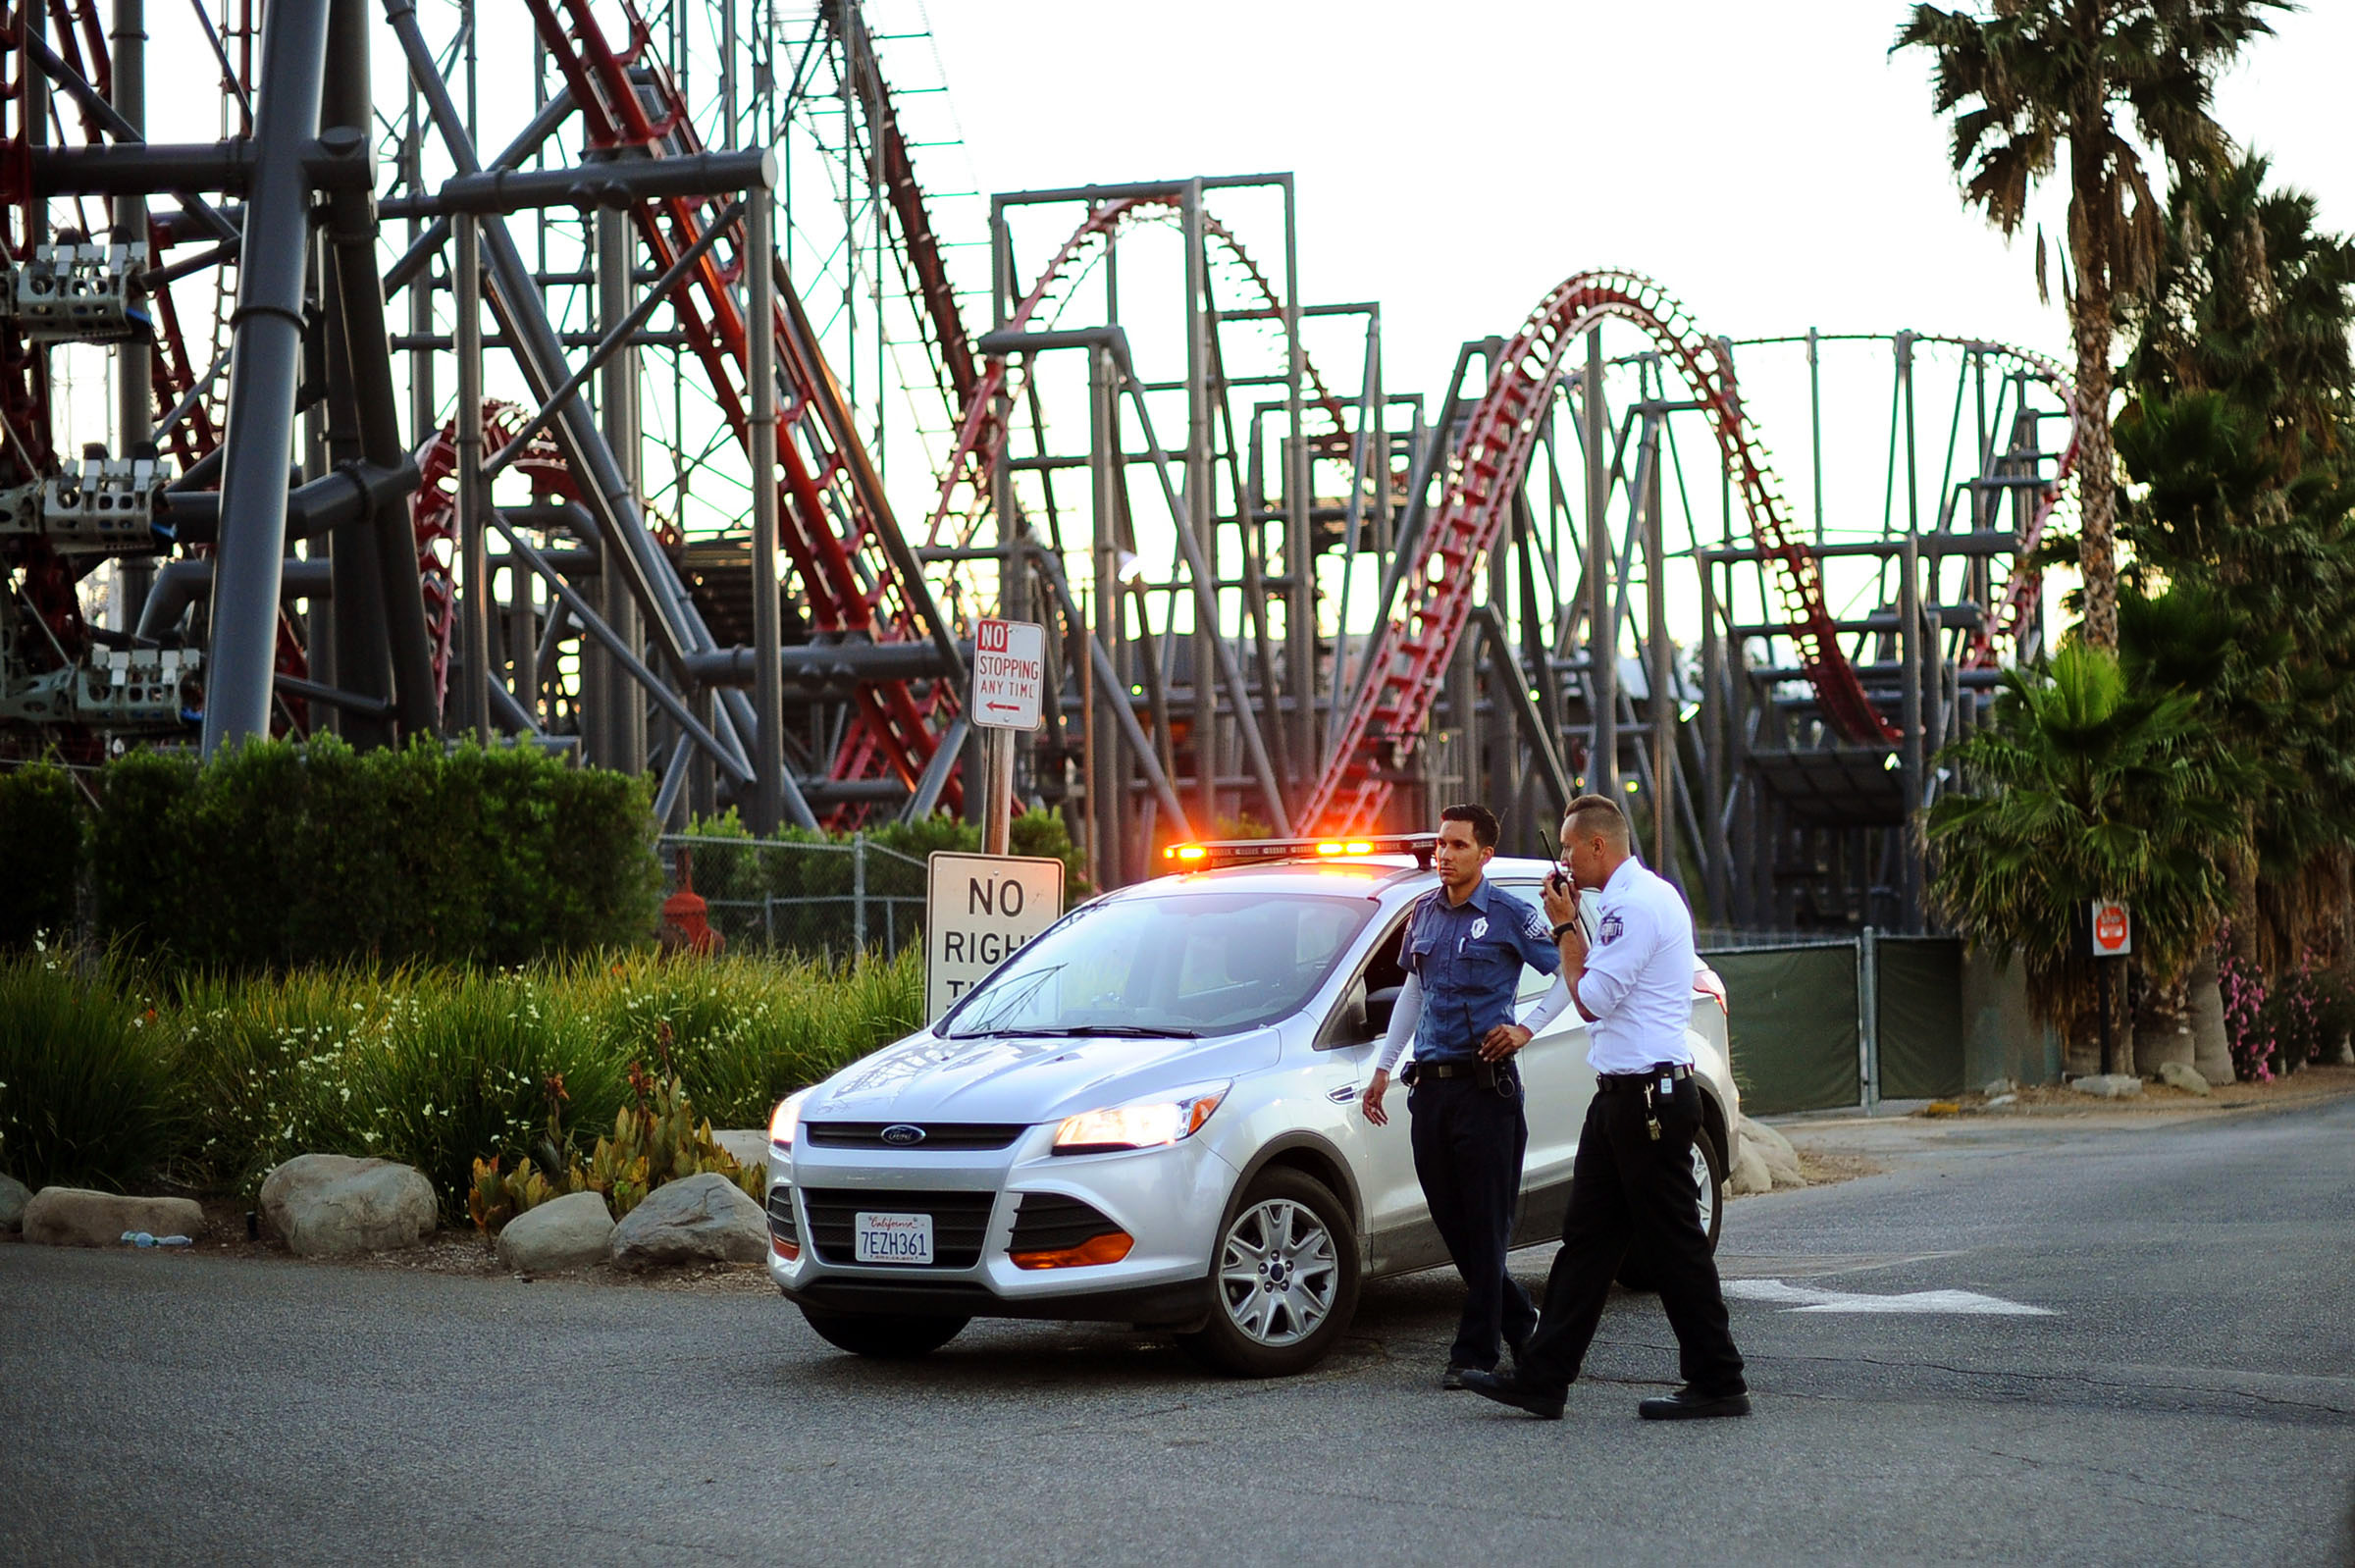 Members of the Six Flags Magic Mountain amusement park security staff monitor the situation at the exit of the park after riders were injured on the Ninja coaster